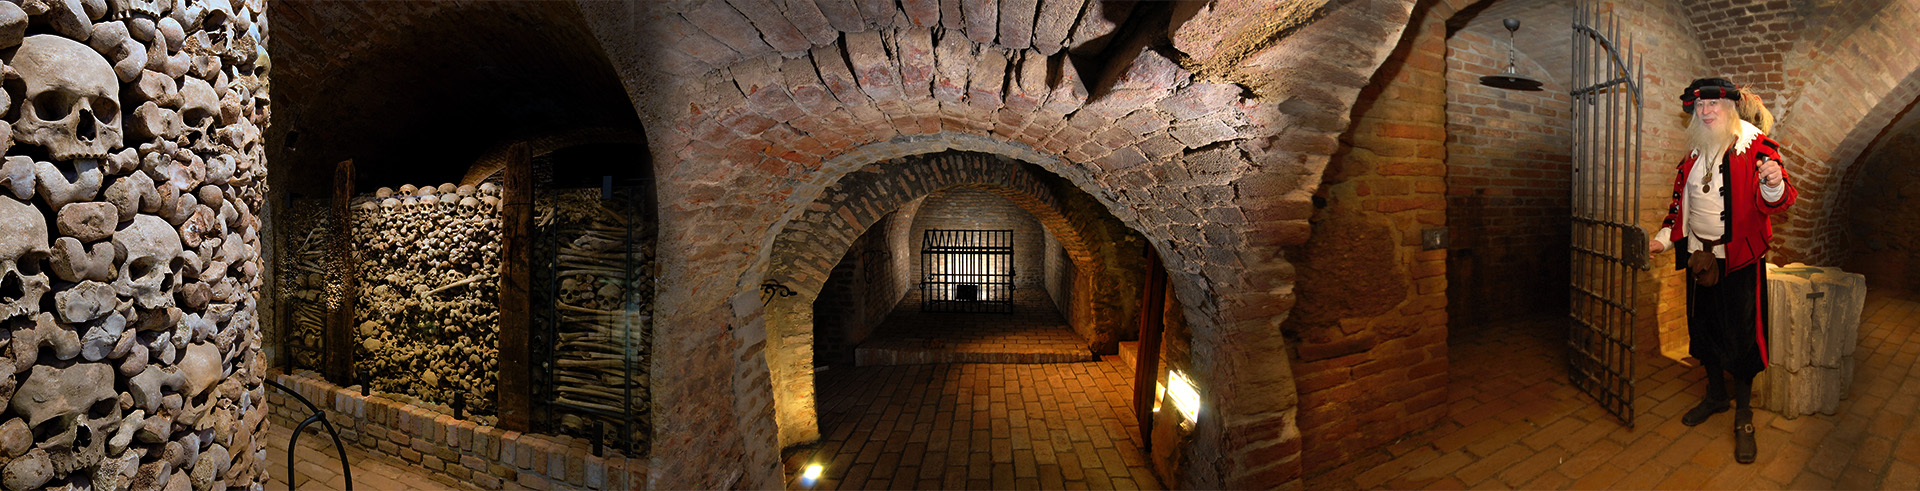 Unique and mysterious atmosphere of the maze of medieval corridors and cellars